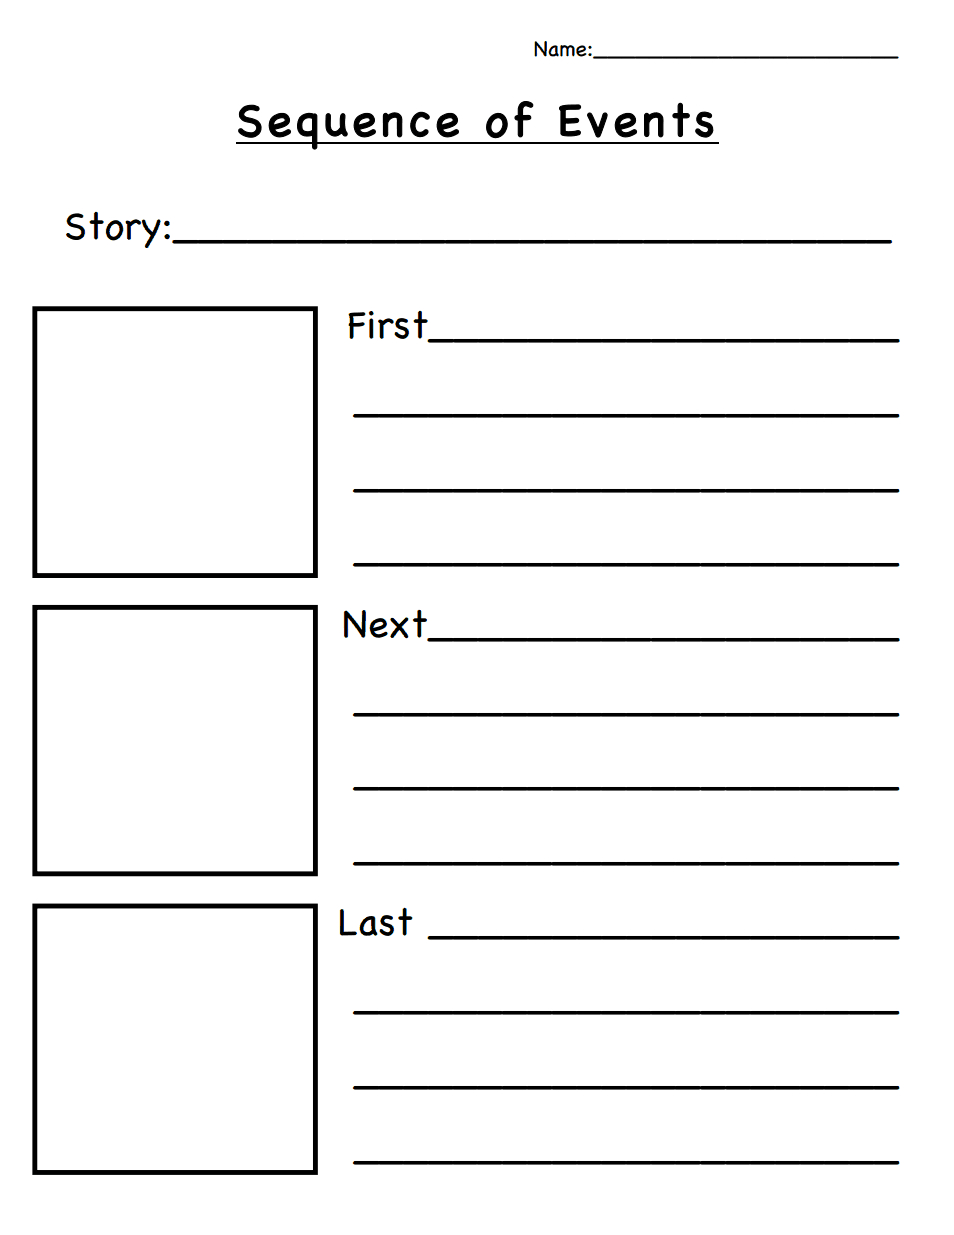 Sequence Of Events.pdf | Classroom Ideas | Sequence Of Events, Story - Free Printable Sequence Of Events Graphic Organizer